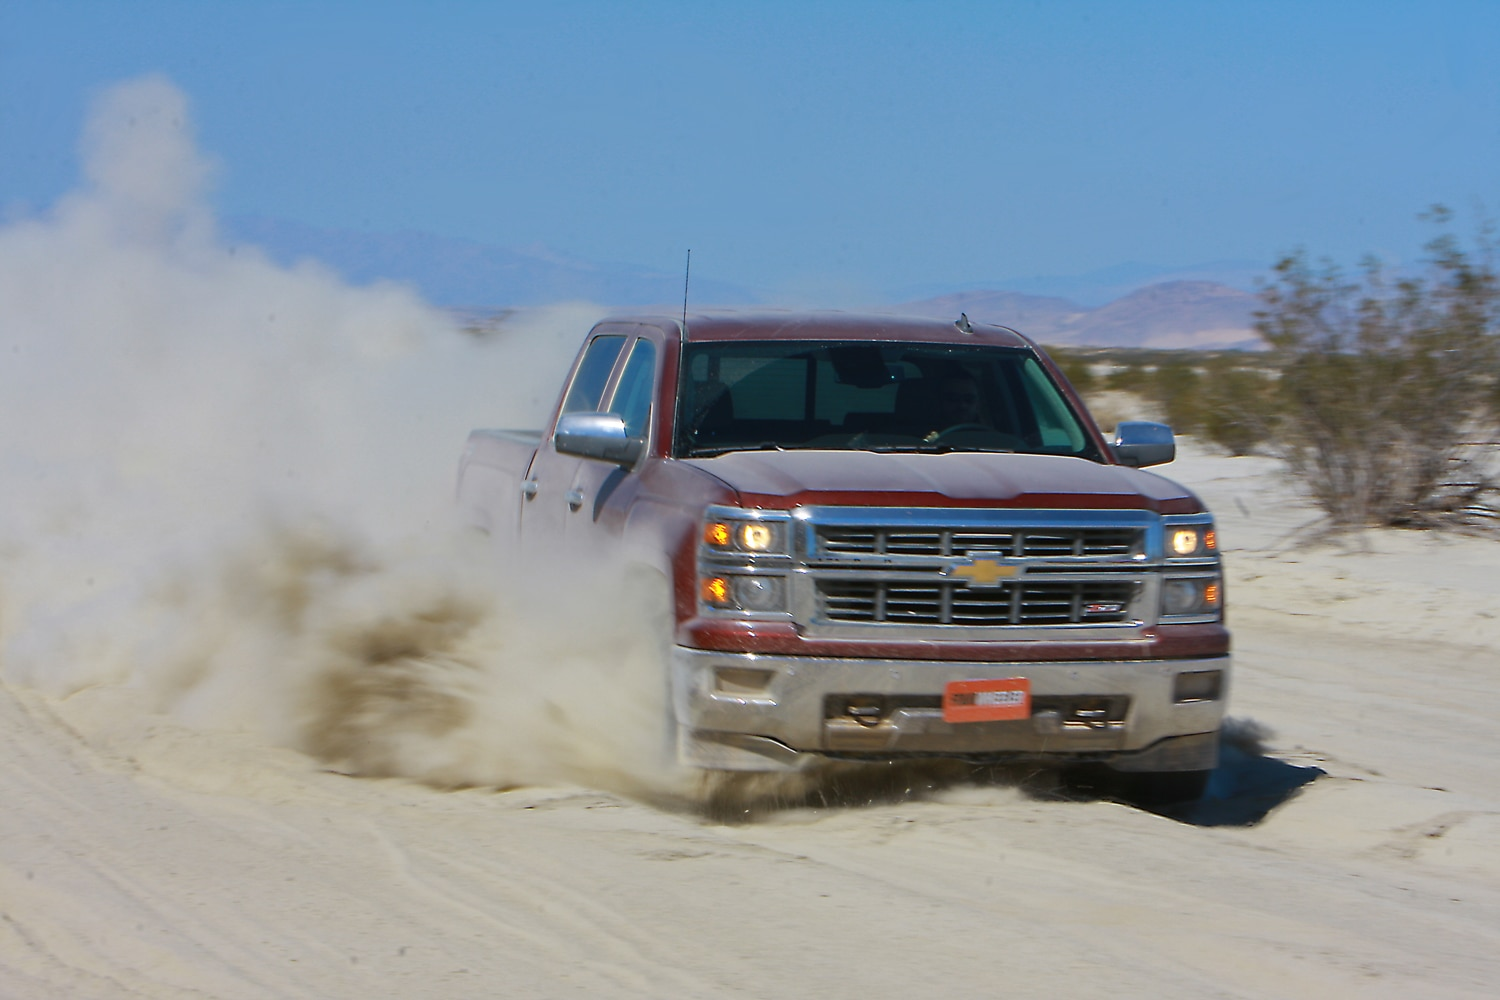 2014 Four Wheeler Of The Year Day 4 Silt Bed   4  2014 Chevy Silverado Z71 hitting silt bed.JPG